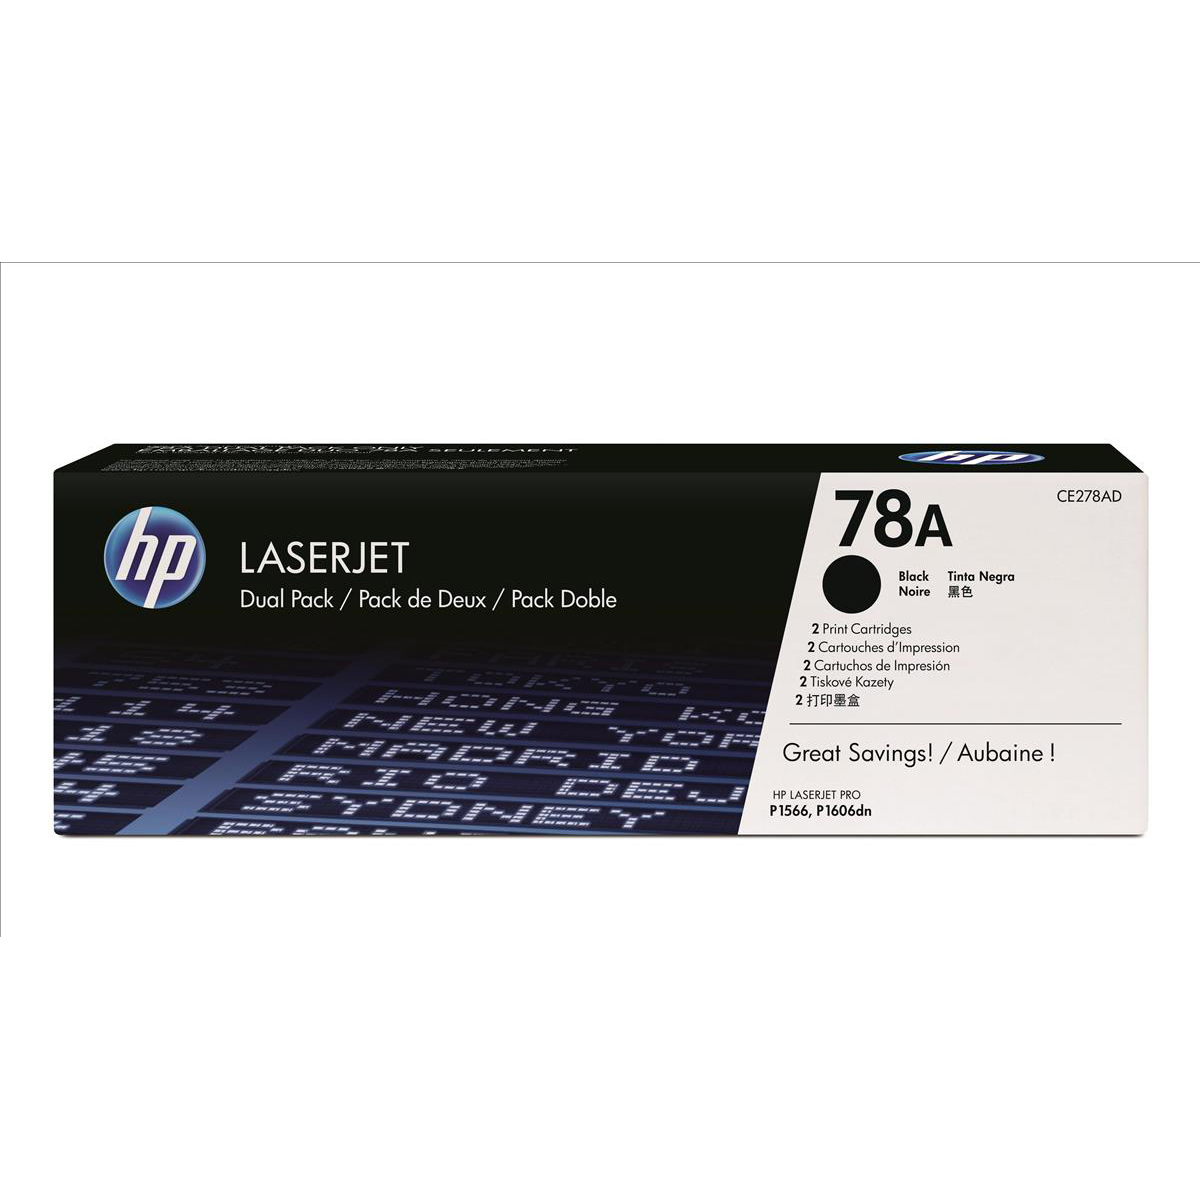 Hewlett Packard [HP] No. 78A Laser Toner Cartridge Page Life 2100pp Black Ref CE278AD [Pack 2]